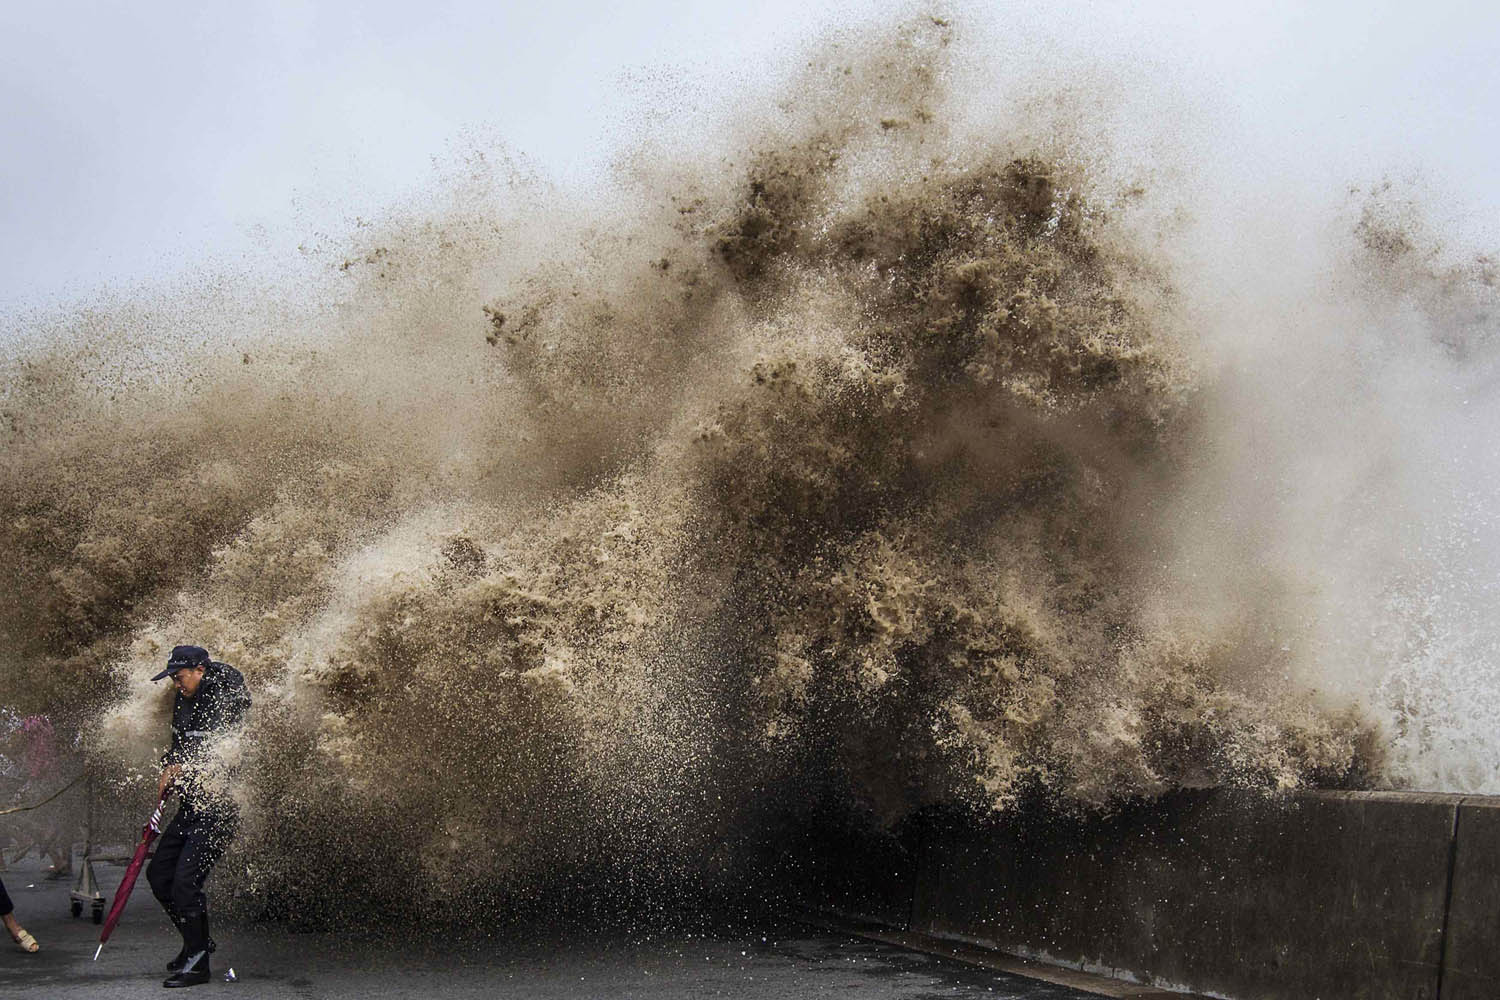 Sept. 21, 2013. A man dodges tidal waves under the influence of Typhoon Usagi in Hangzhou, Zhejiang province, China.